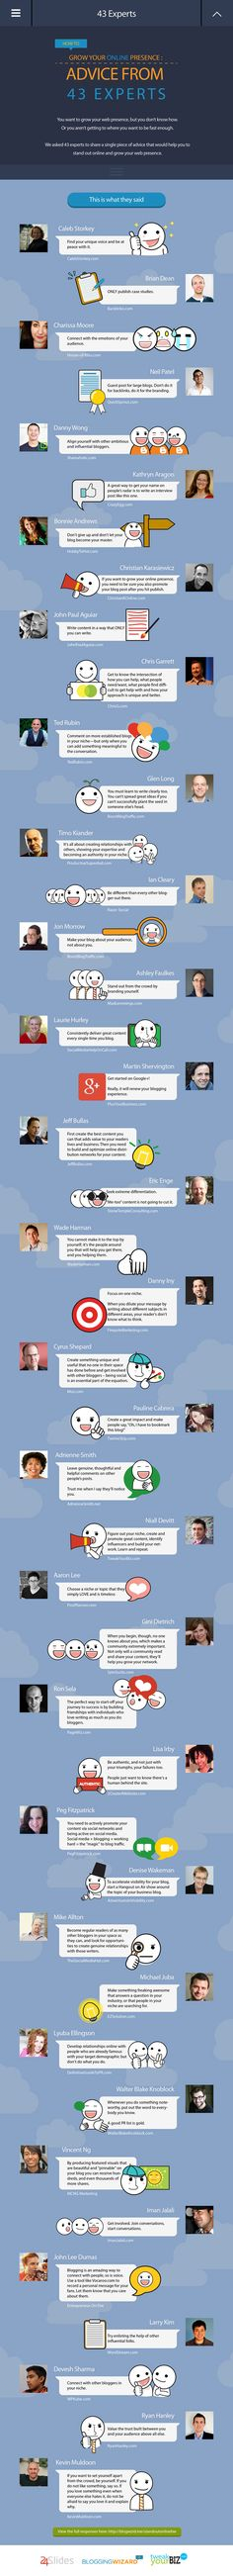 How To Grow Your Online Presence: Advice From 43 Experts [INFOGRAPHIC]